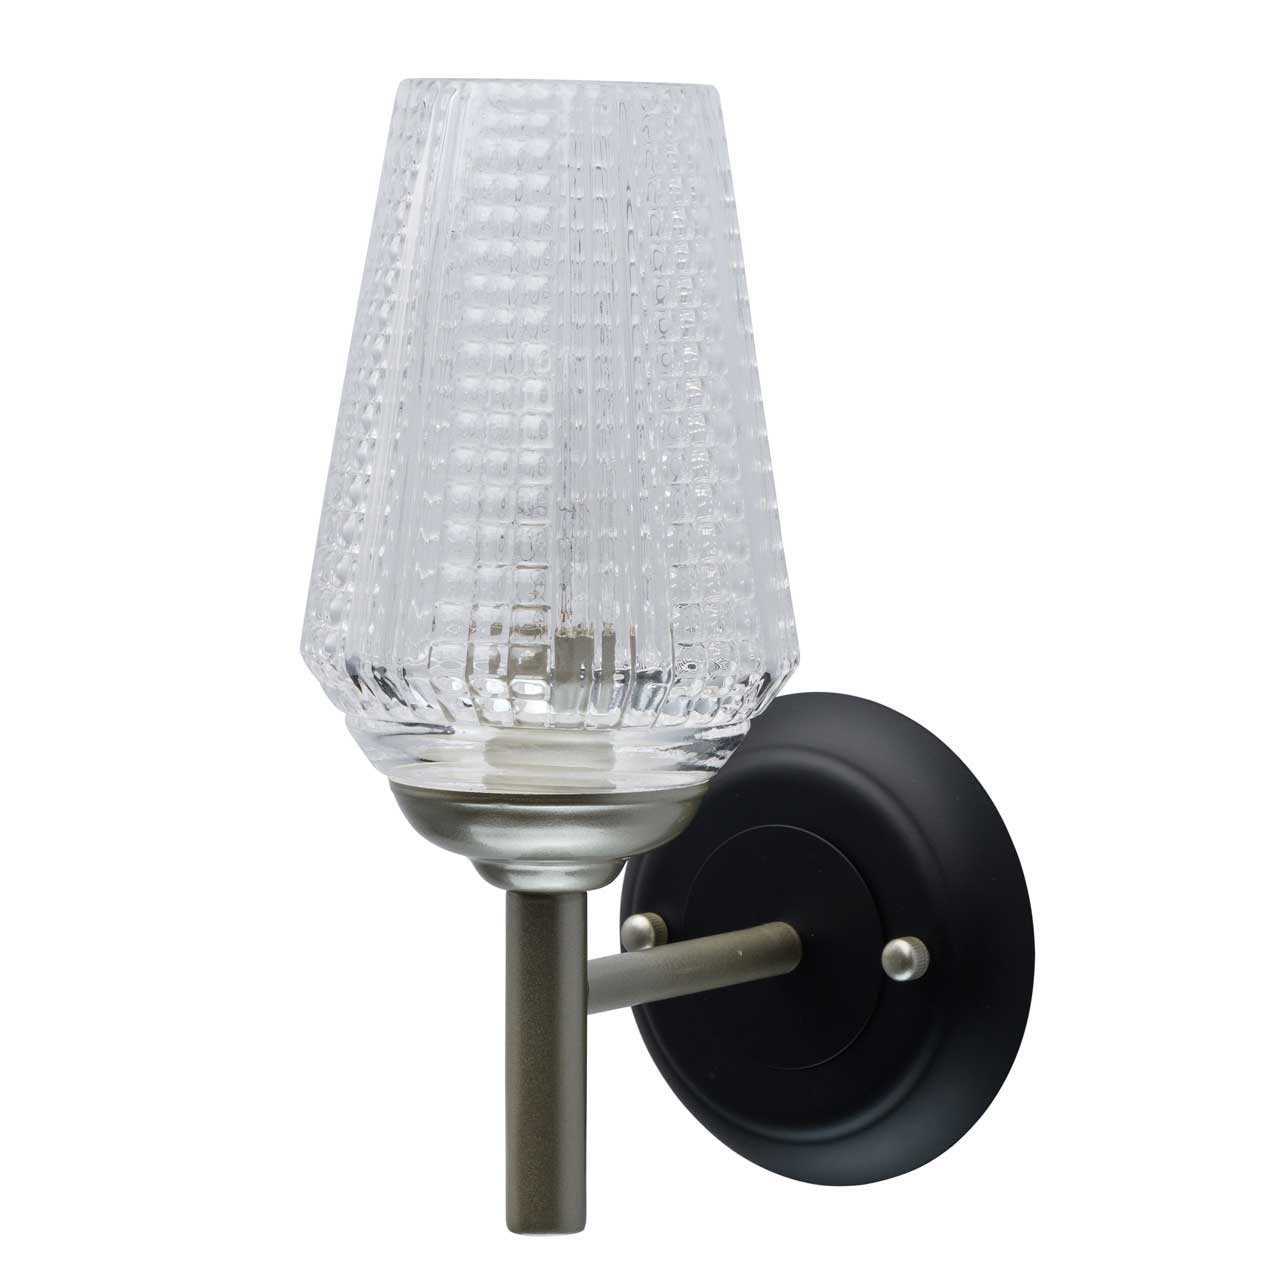 Бра MW-Light Альгеро 285021201 эпилятор philips bre610